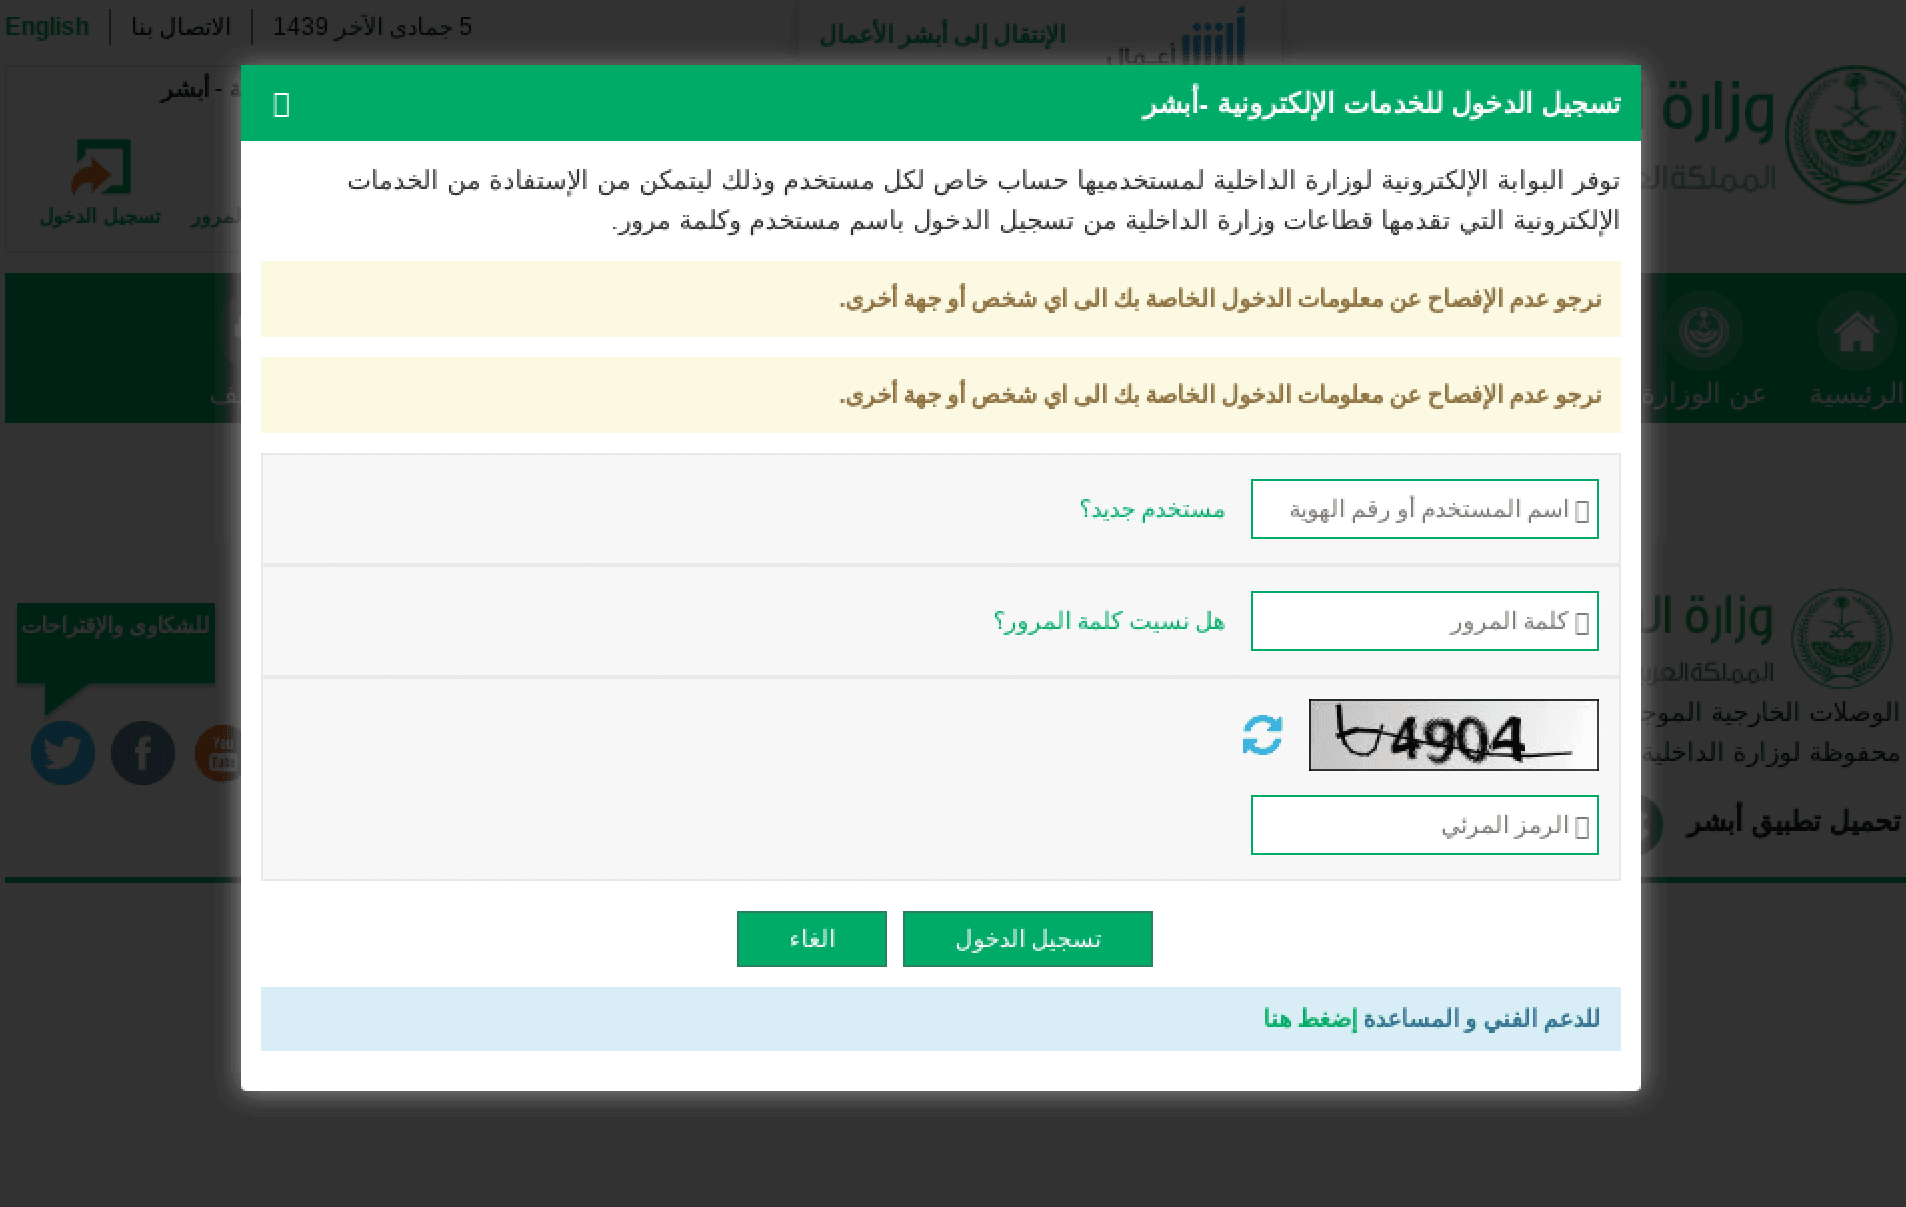 Faux account login page for MOI e-Services Absher portal